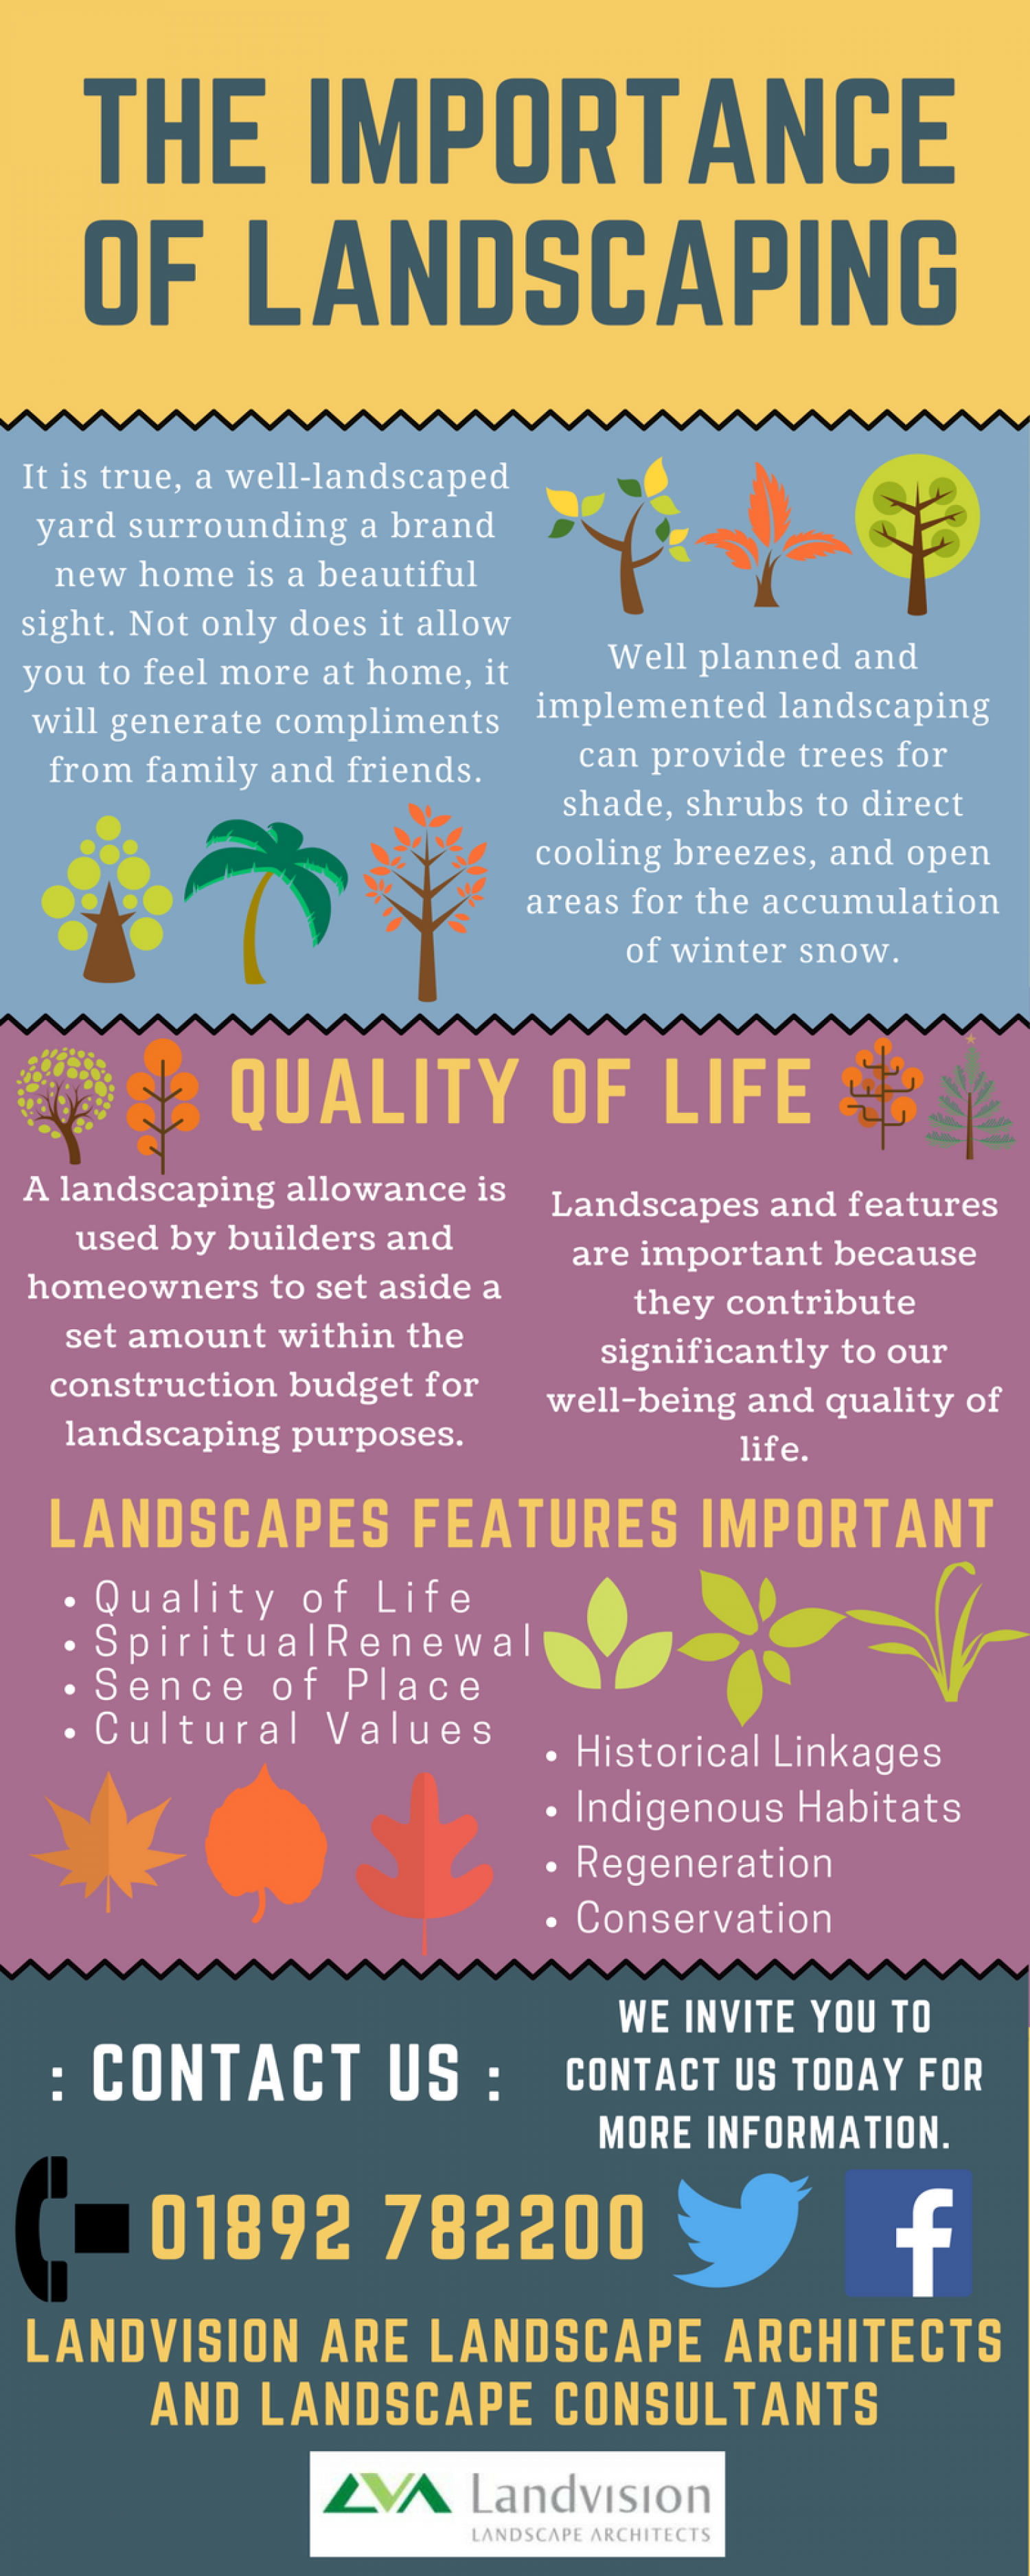 The Importance of Landscaping – Infographic by LandVision Infographic